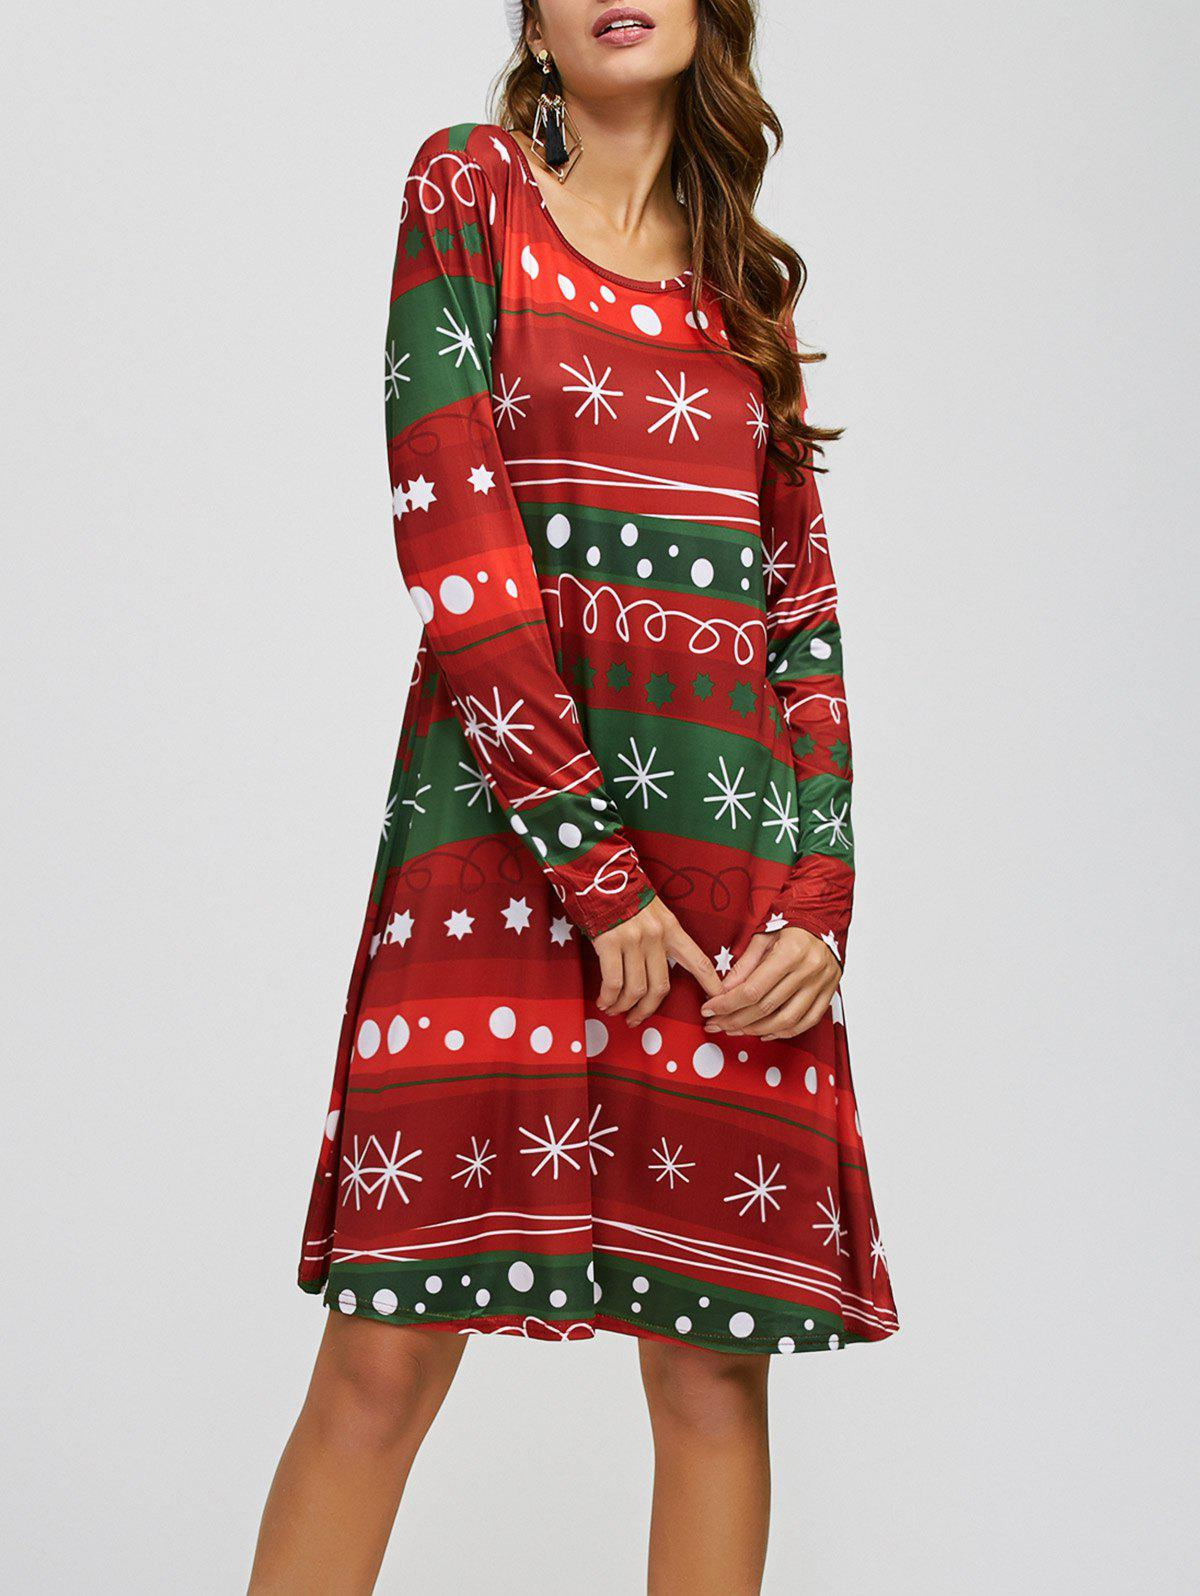 Snowflake Print Long Sleeves Xmas Swing Dress long sleeves layered swing sweater dress